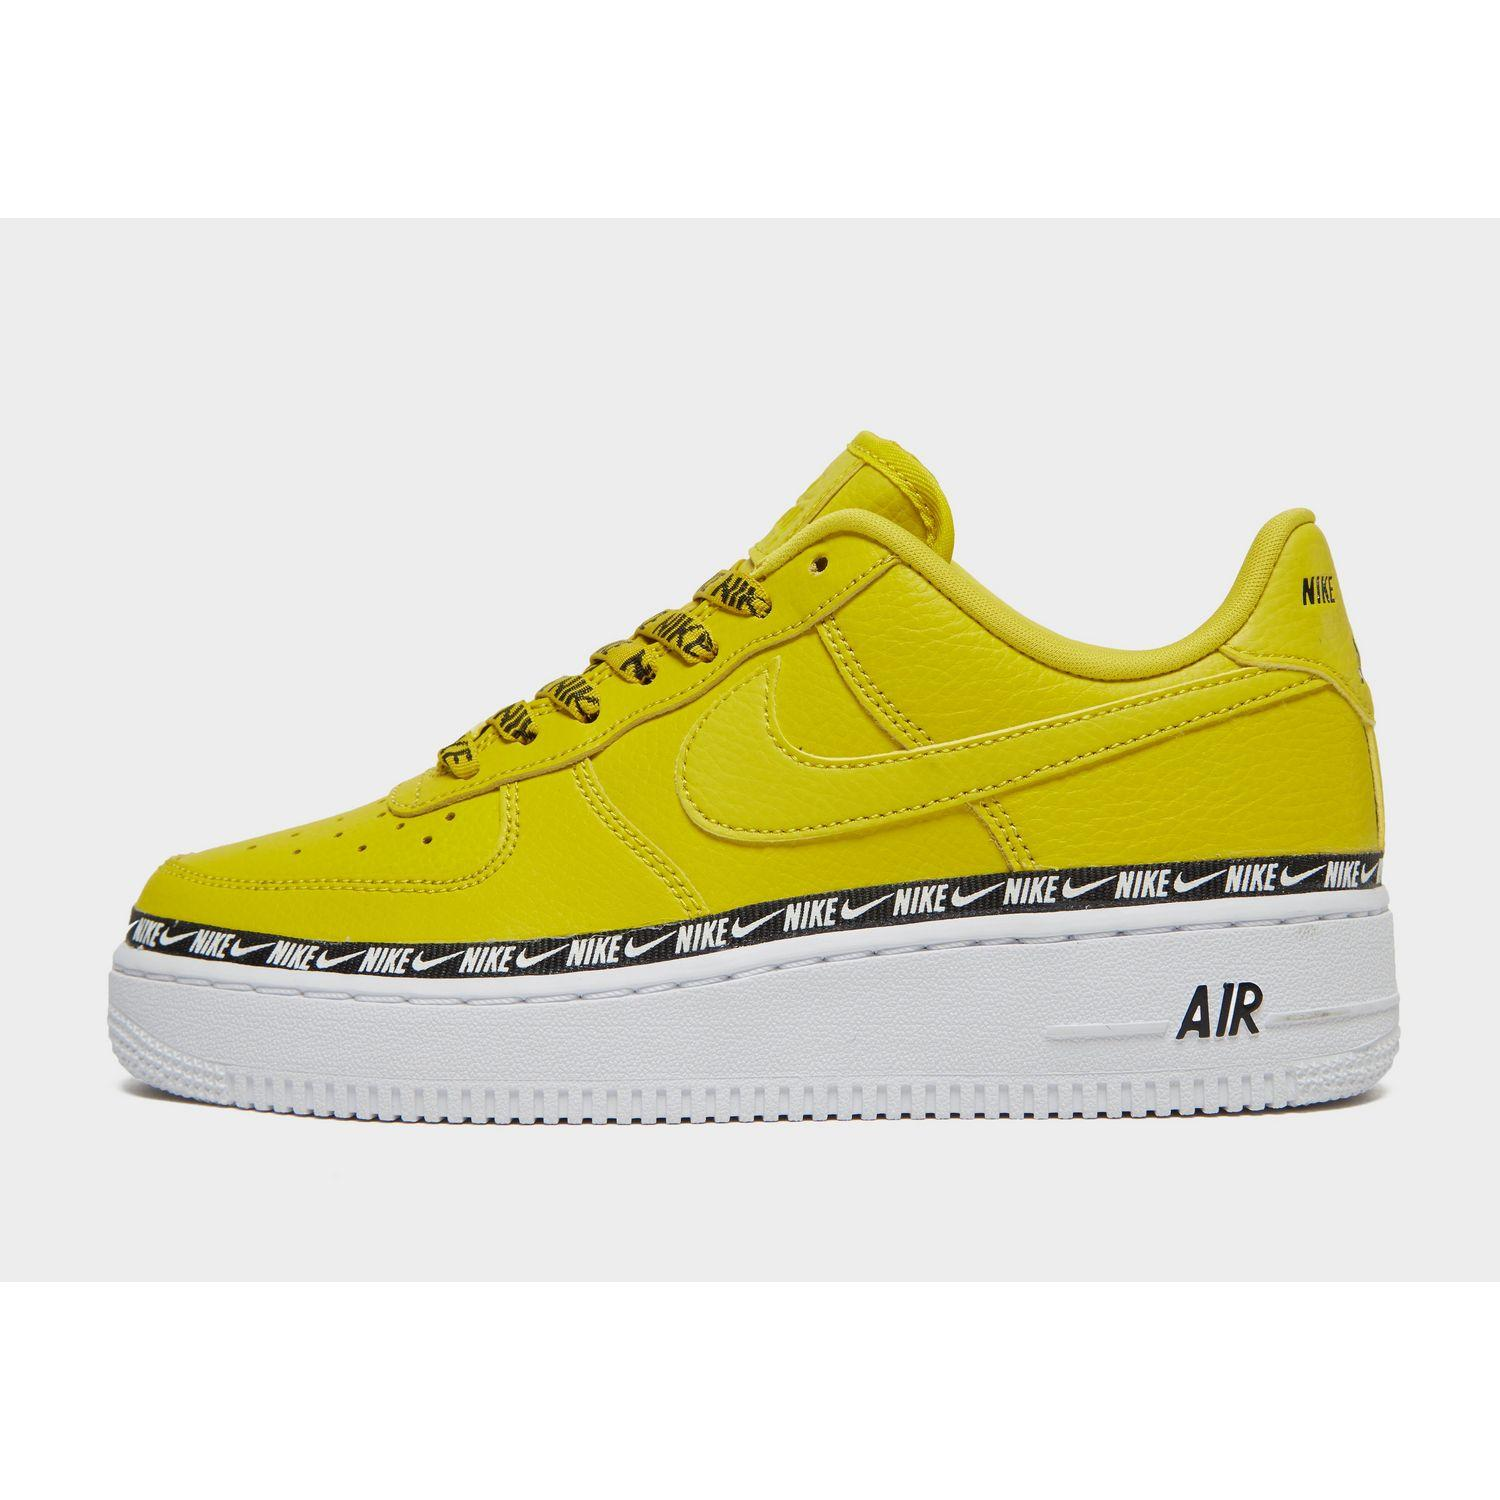 Nike Leather Air Force 1 '07 Se Premium Shoe in Green - Lyst